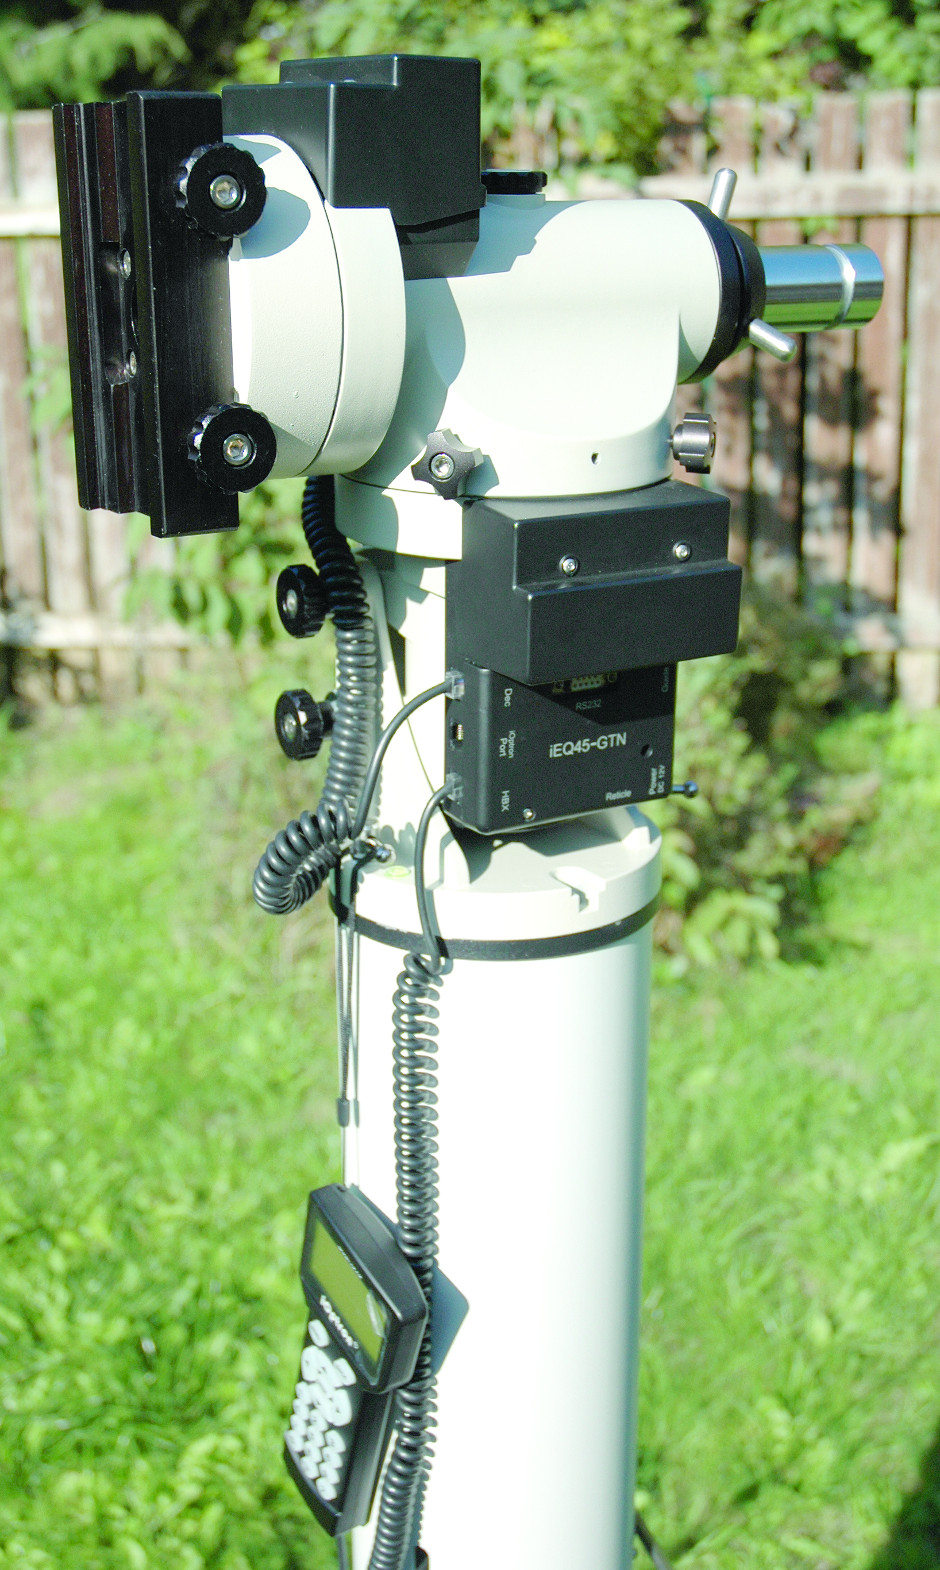 The iOptron iEQ45 mount fixed onto a plinth. Image credit: Ninian Boyle